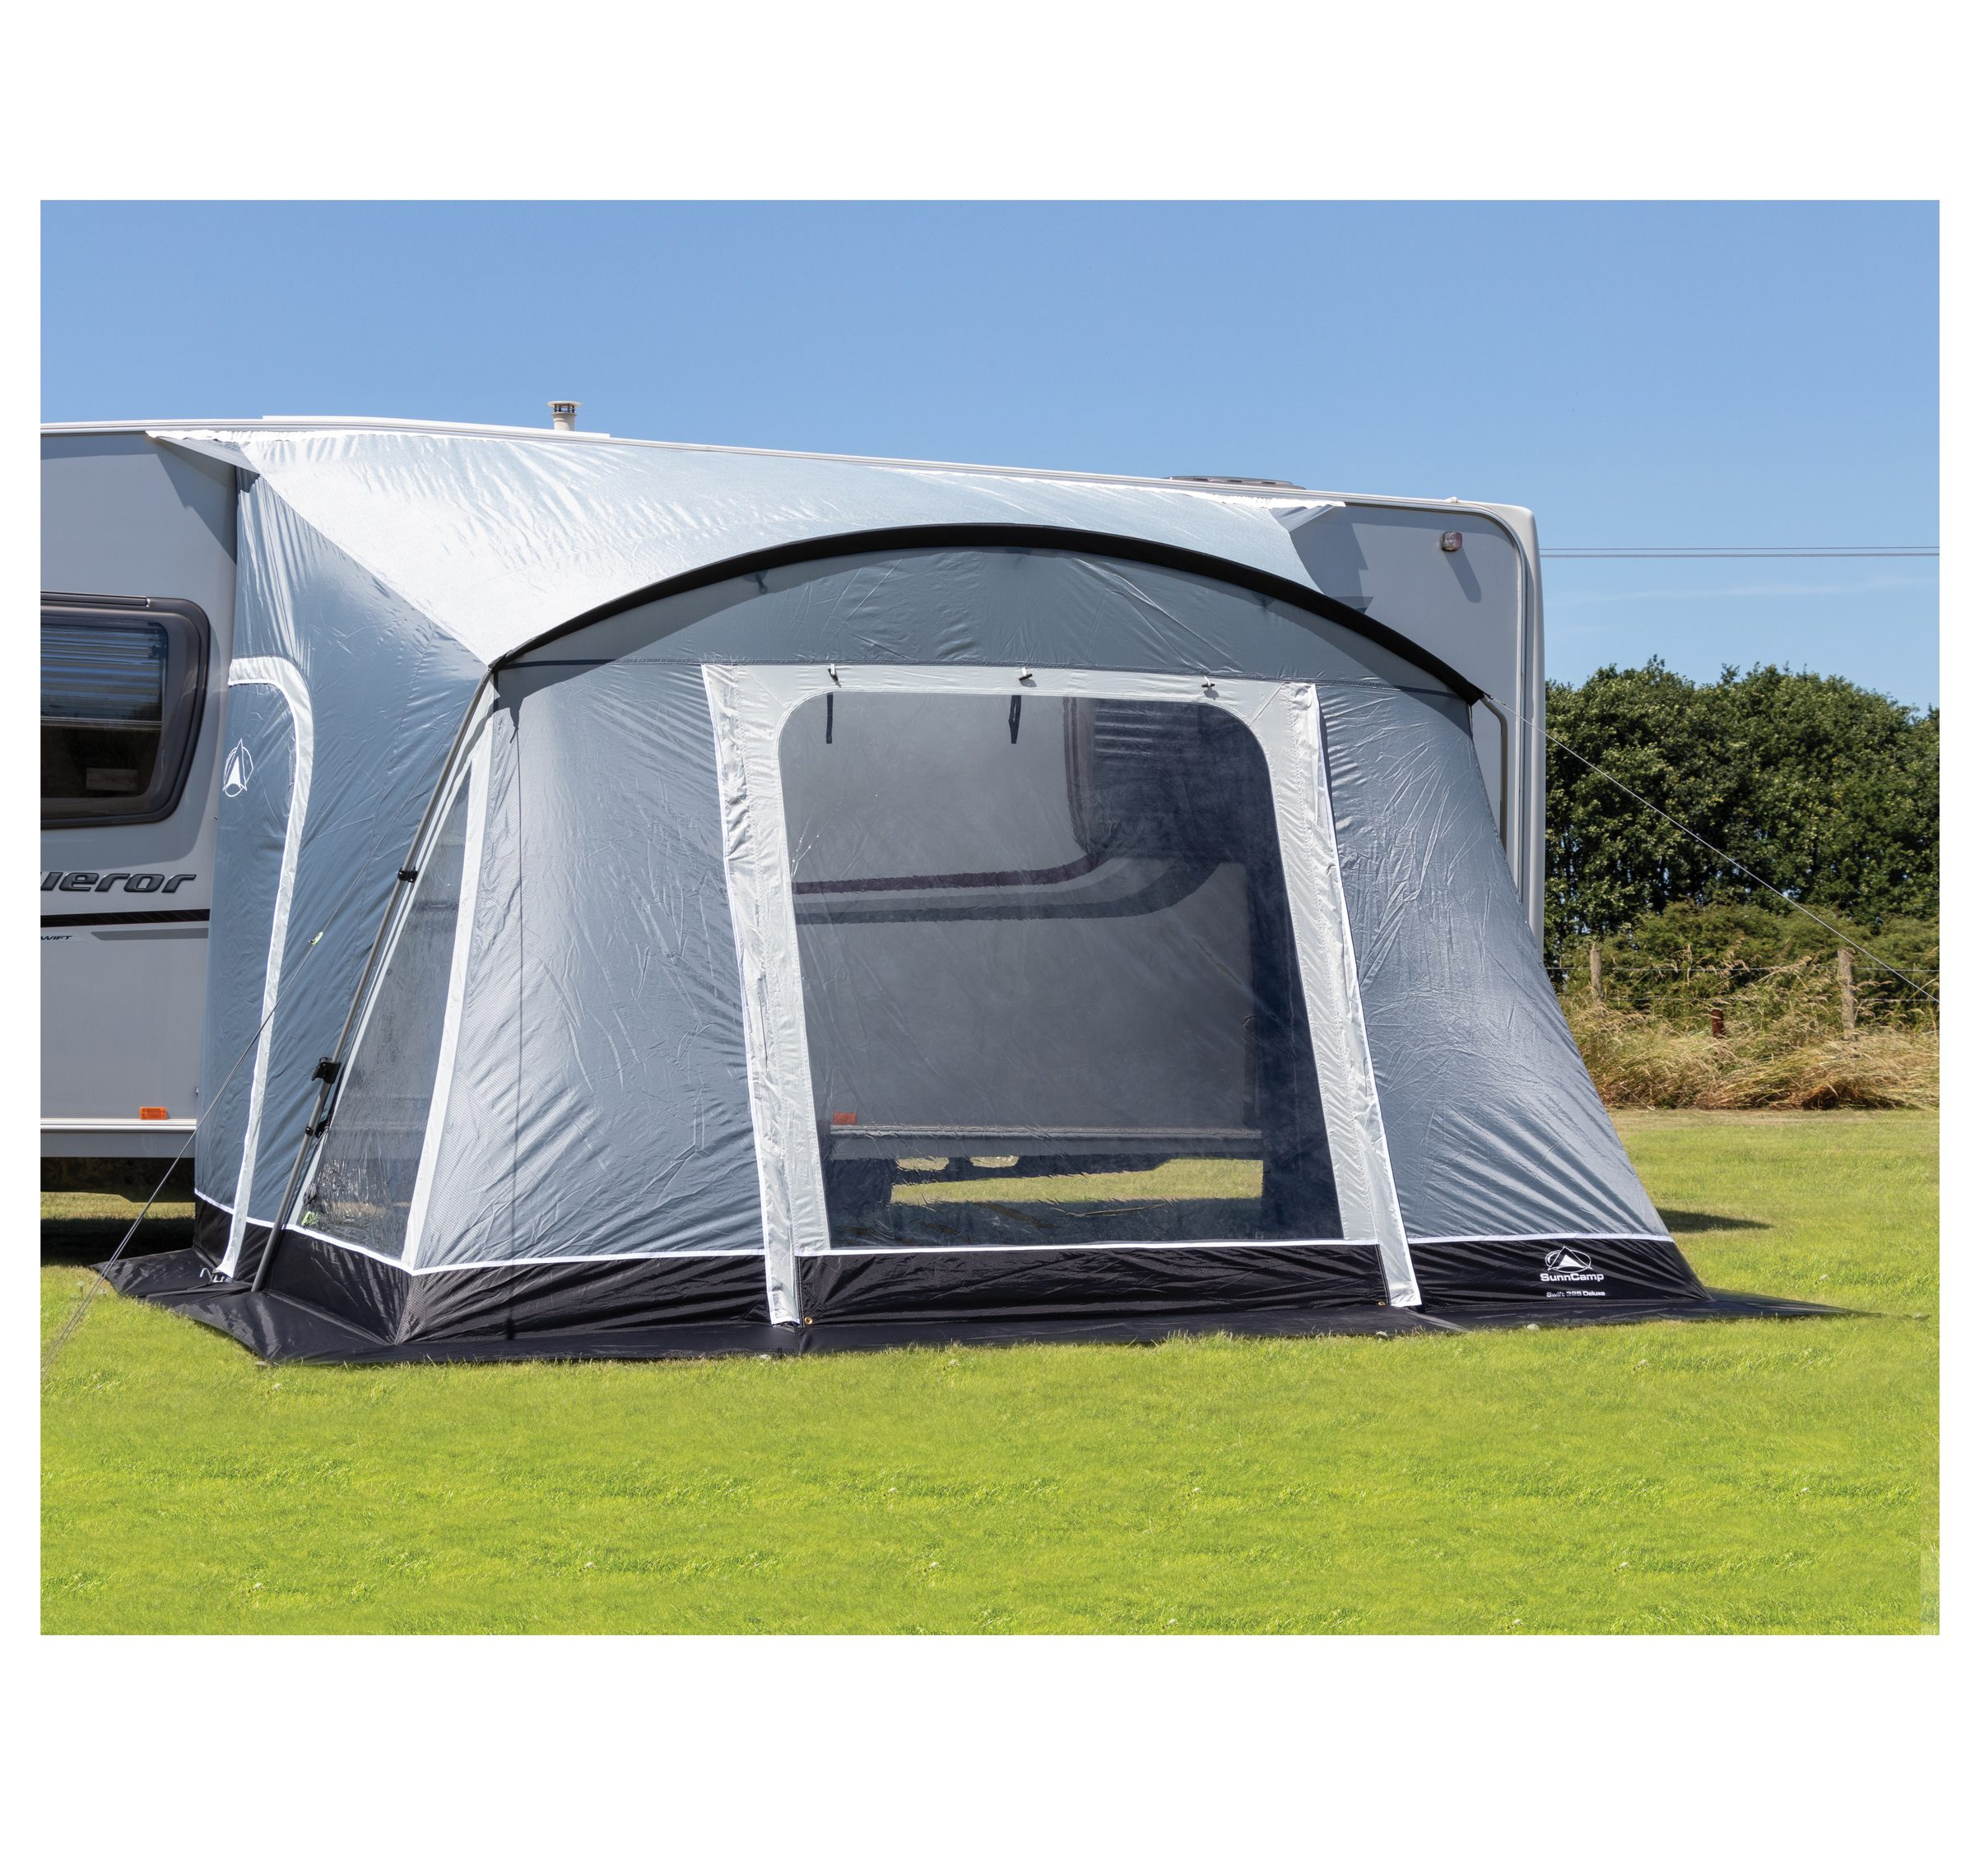 Sunncamp Swift Deluxe 325 Awning 2019